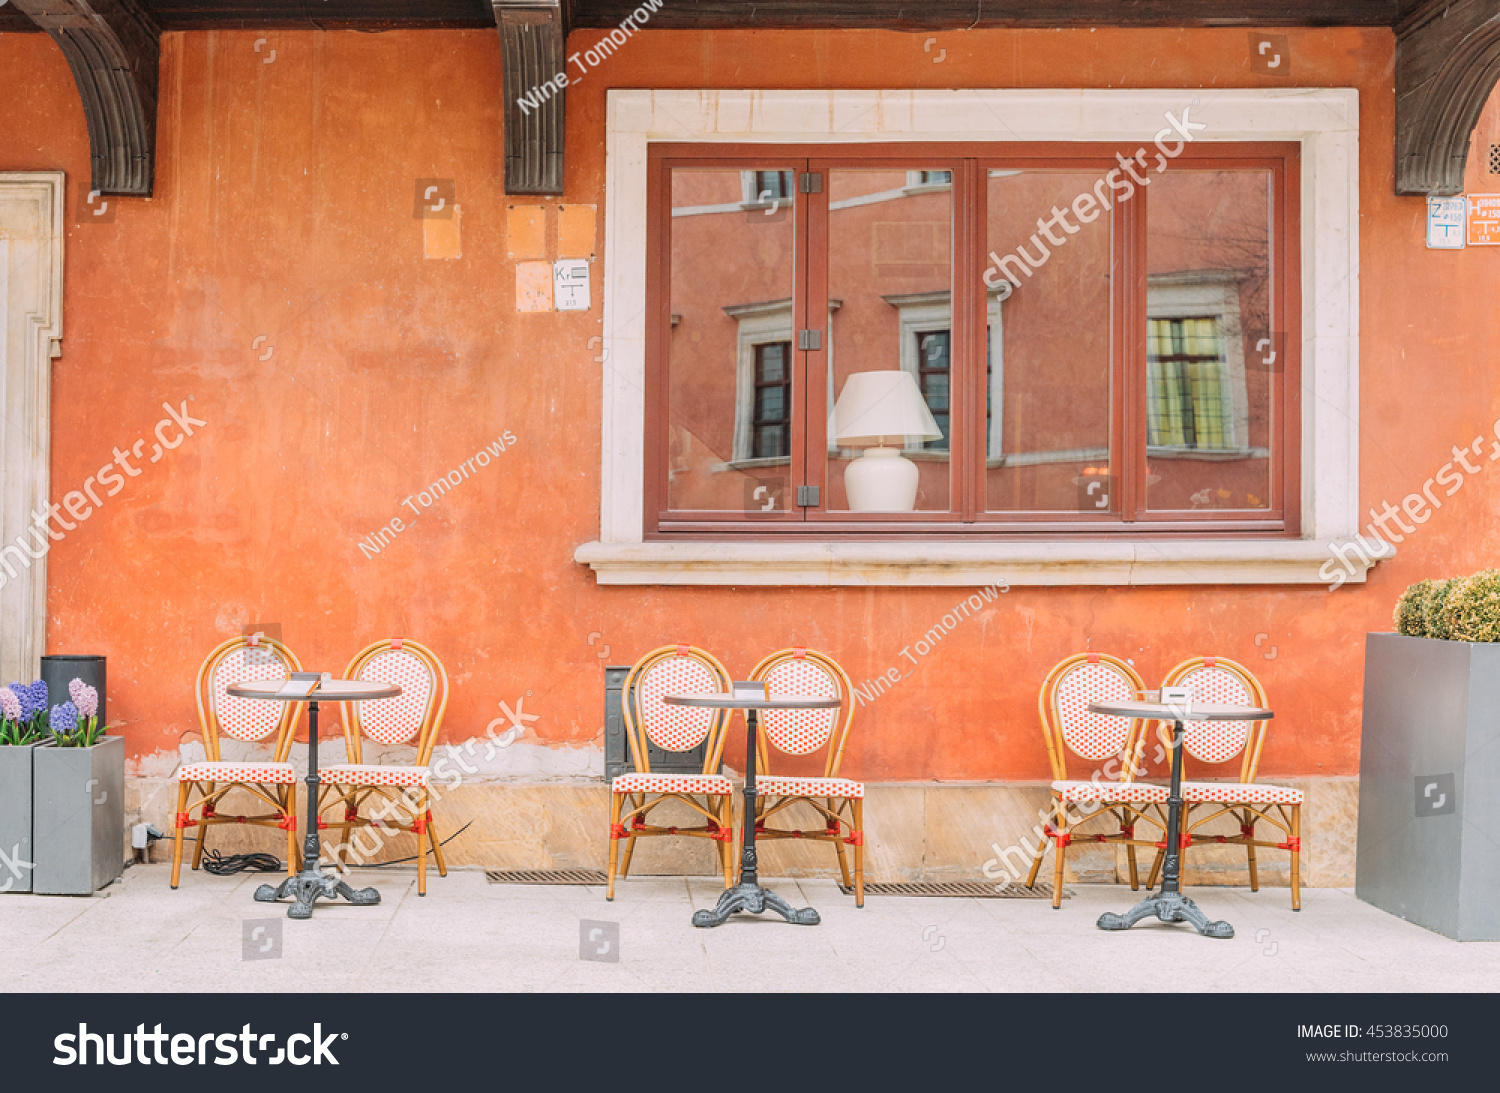 Vintage Café Retro Vintage Cafe Terrace Interior Historical Stock Photo Edit